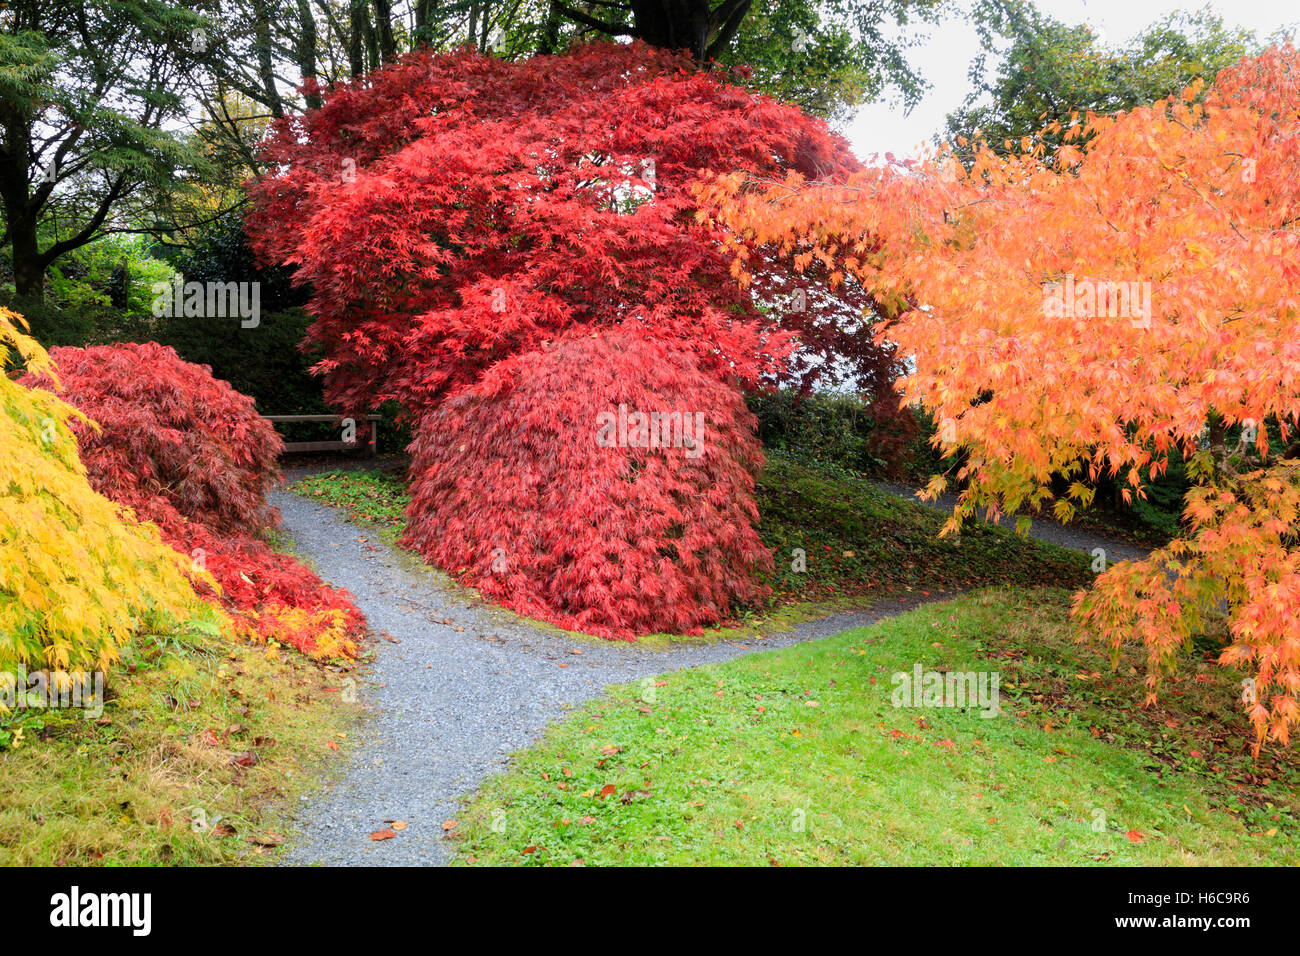 Reds, yellow and orange Autumn leaf colour from Acer palmatum varietes in the Acer Glade at The Garden House, Devon - Stock Image